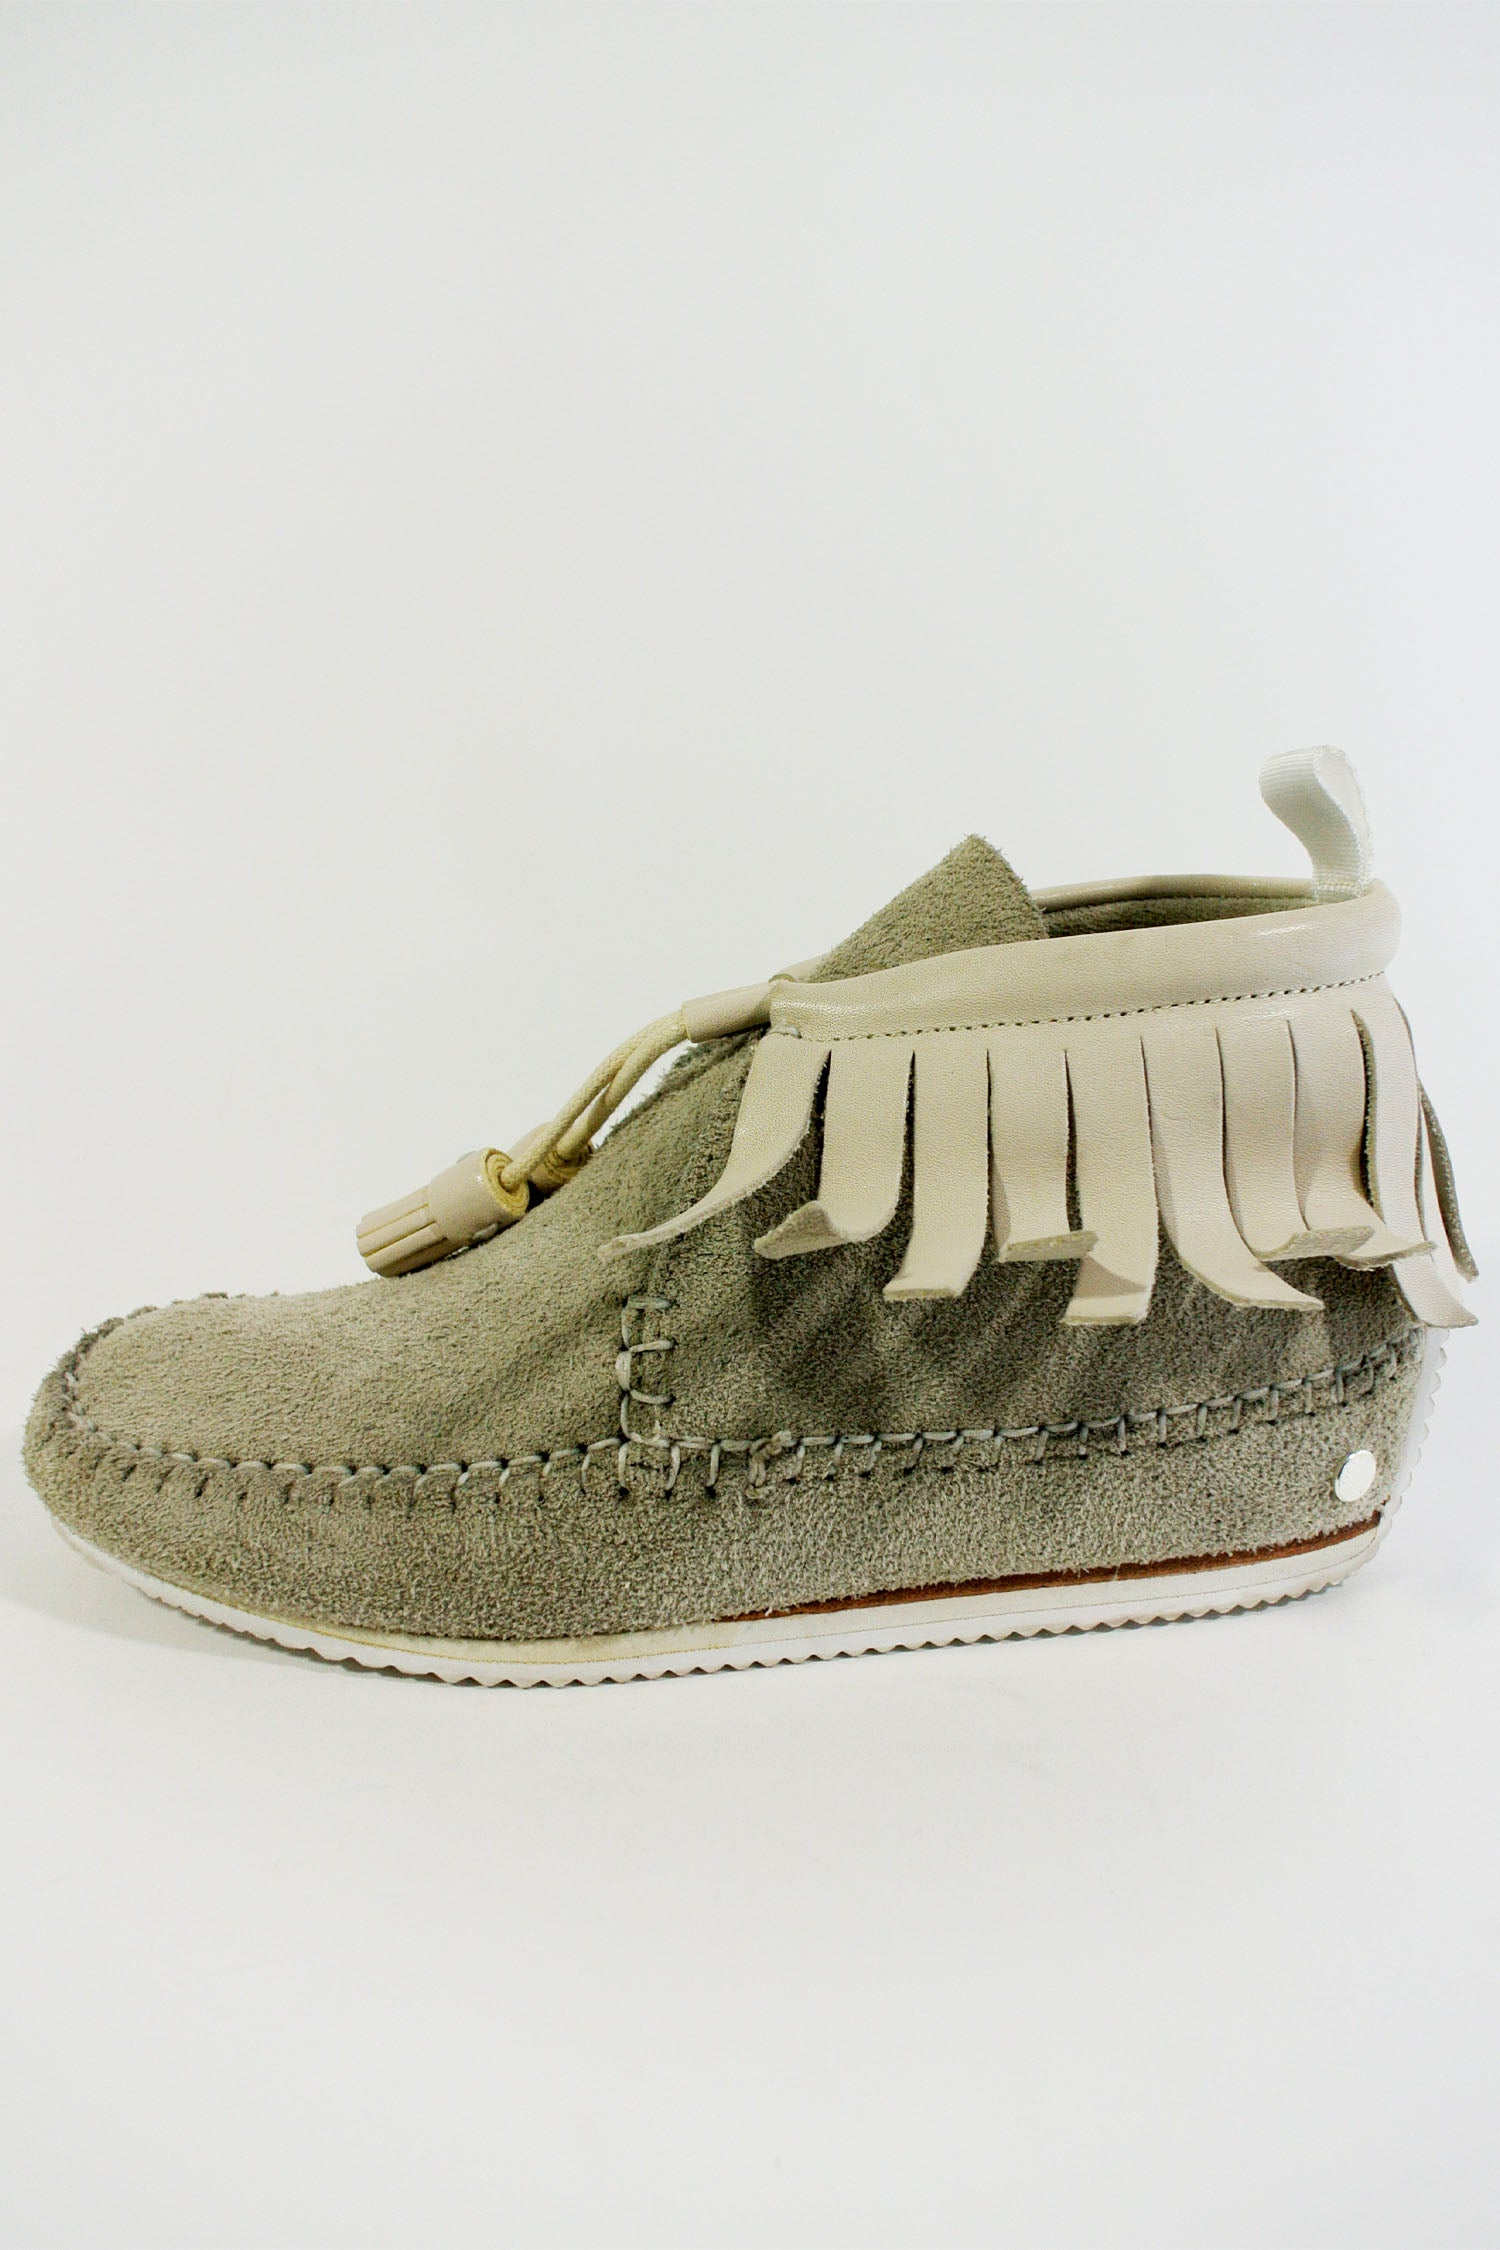 Rag & Bone Ghita Moccasin Booties Sz 35